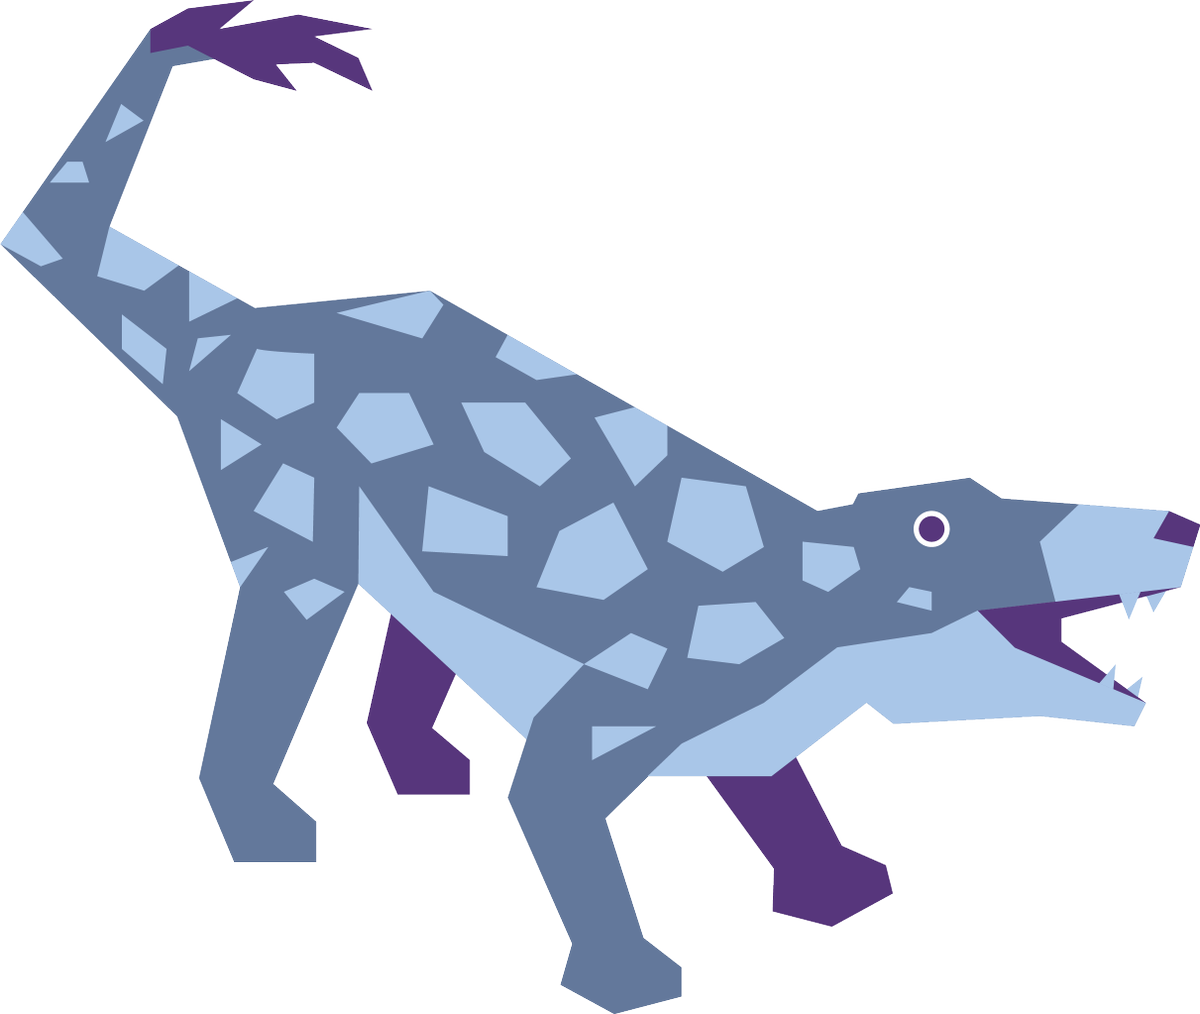 Hashtag vector illustration. Cynognathus on twitter what